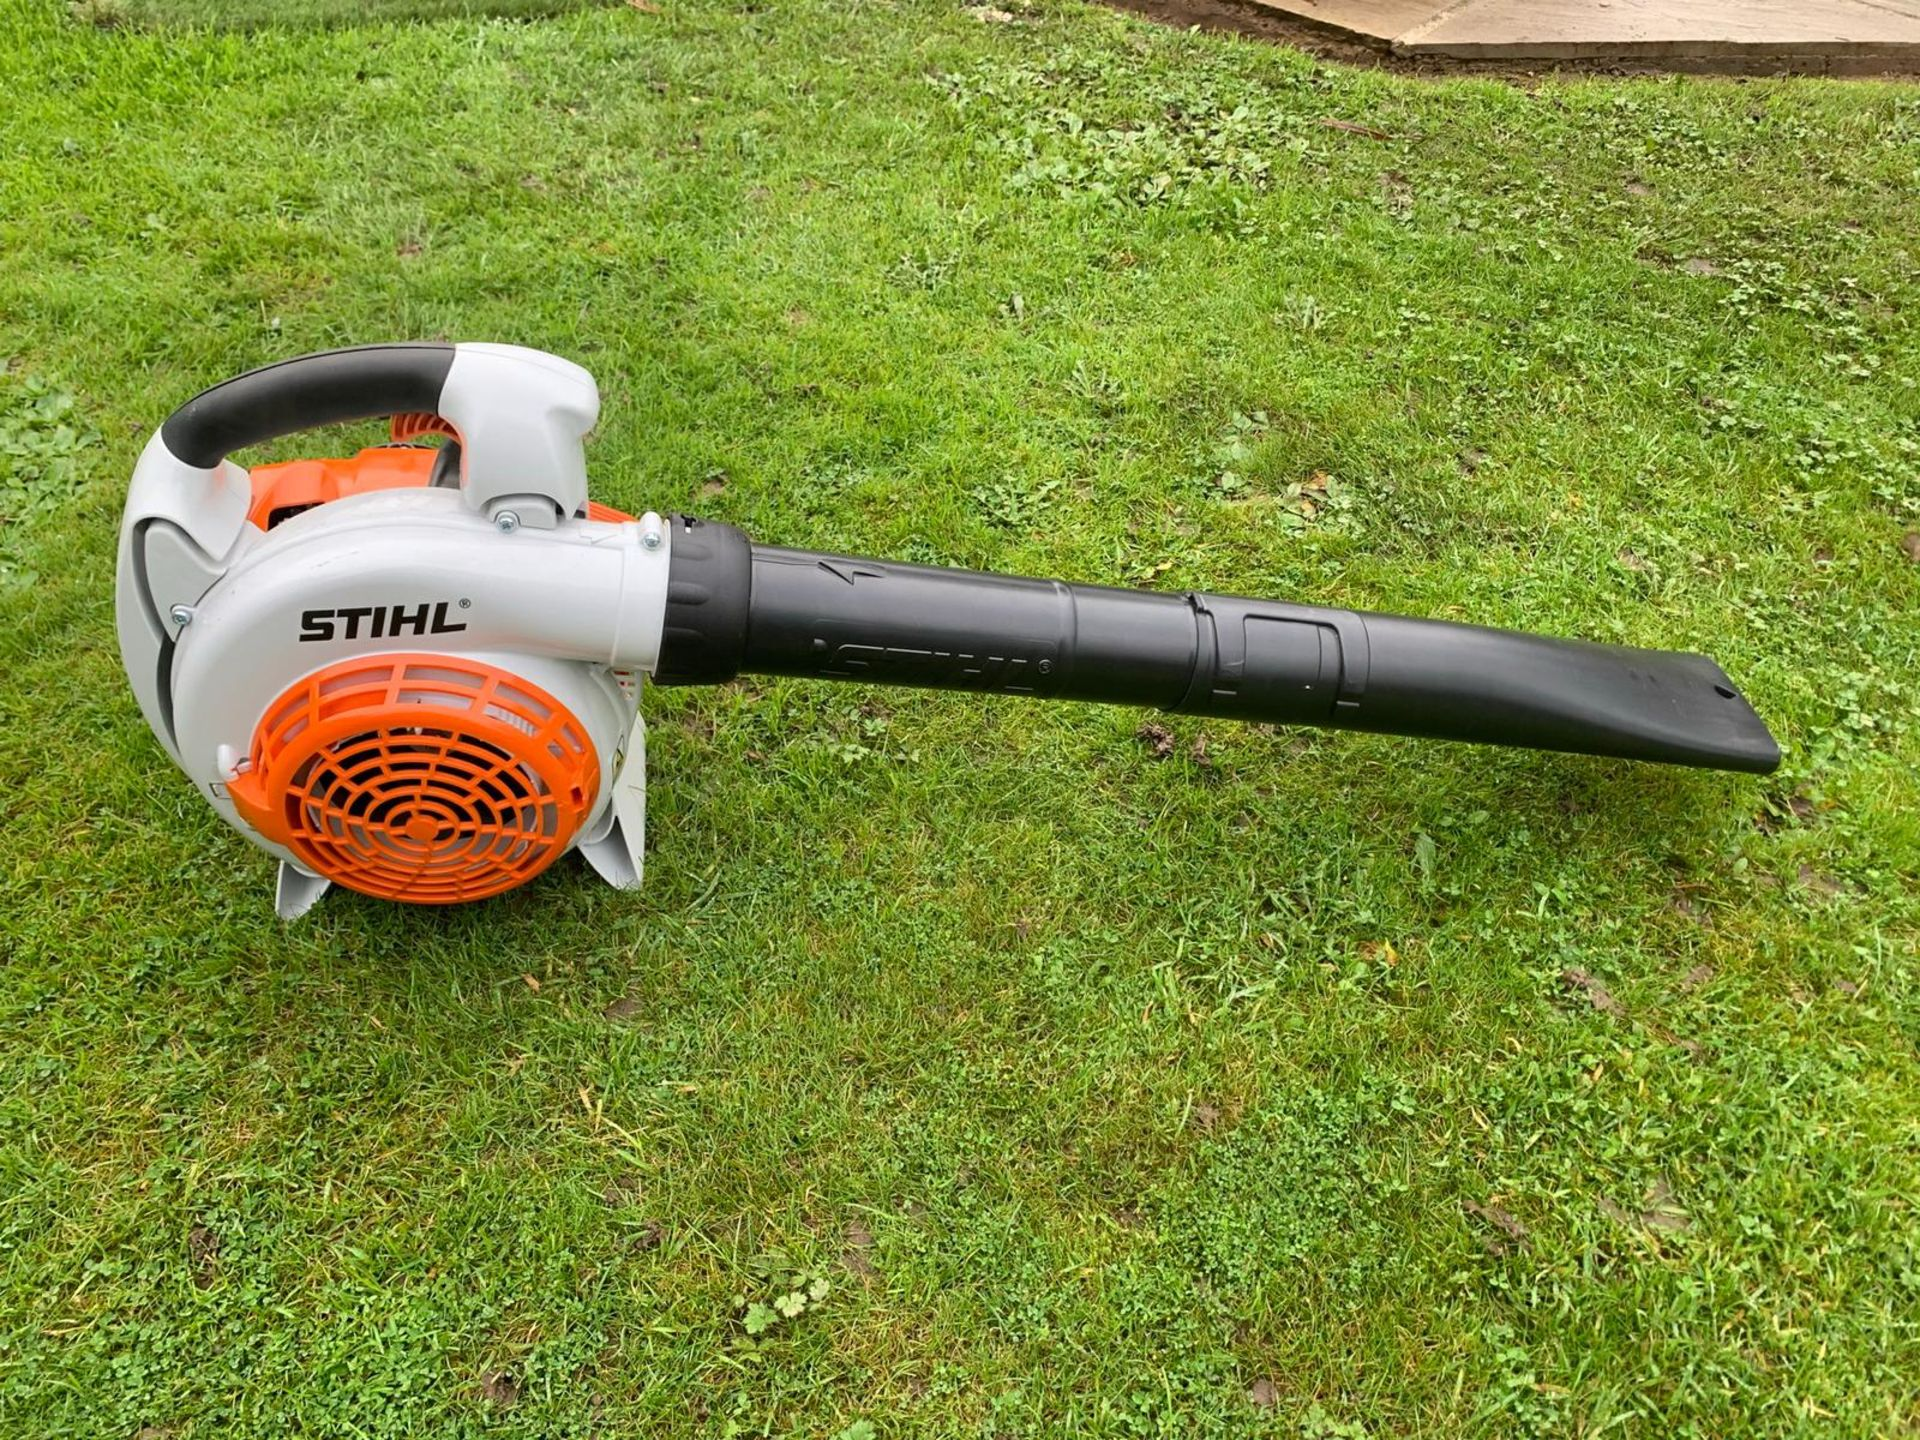 BRAND NEW AND UNUSED STIHL BG86C-3 LEAF BLOWER, C/W MANUAL AND PIPES (BOXED) *NO VAT*